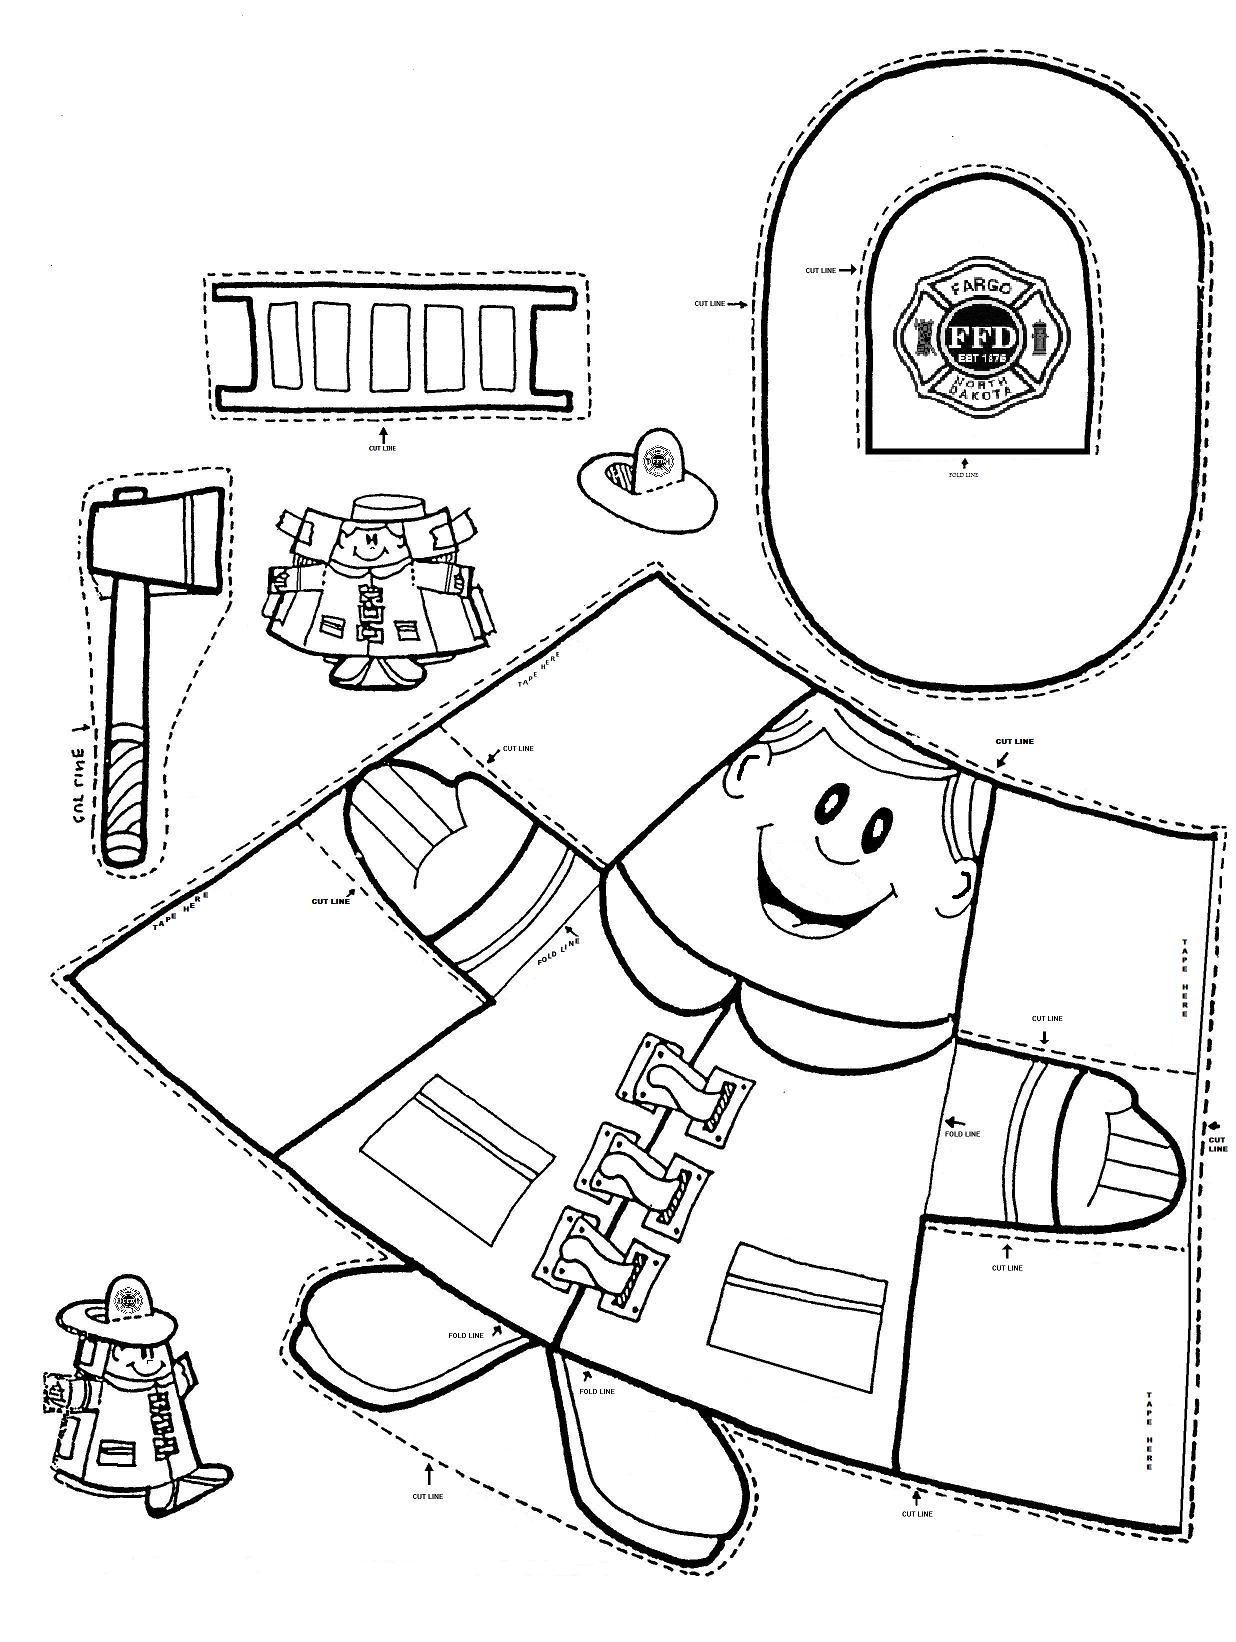 social stories coloring pages - photo#24